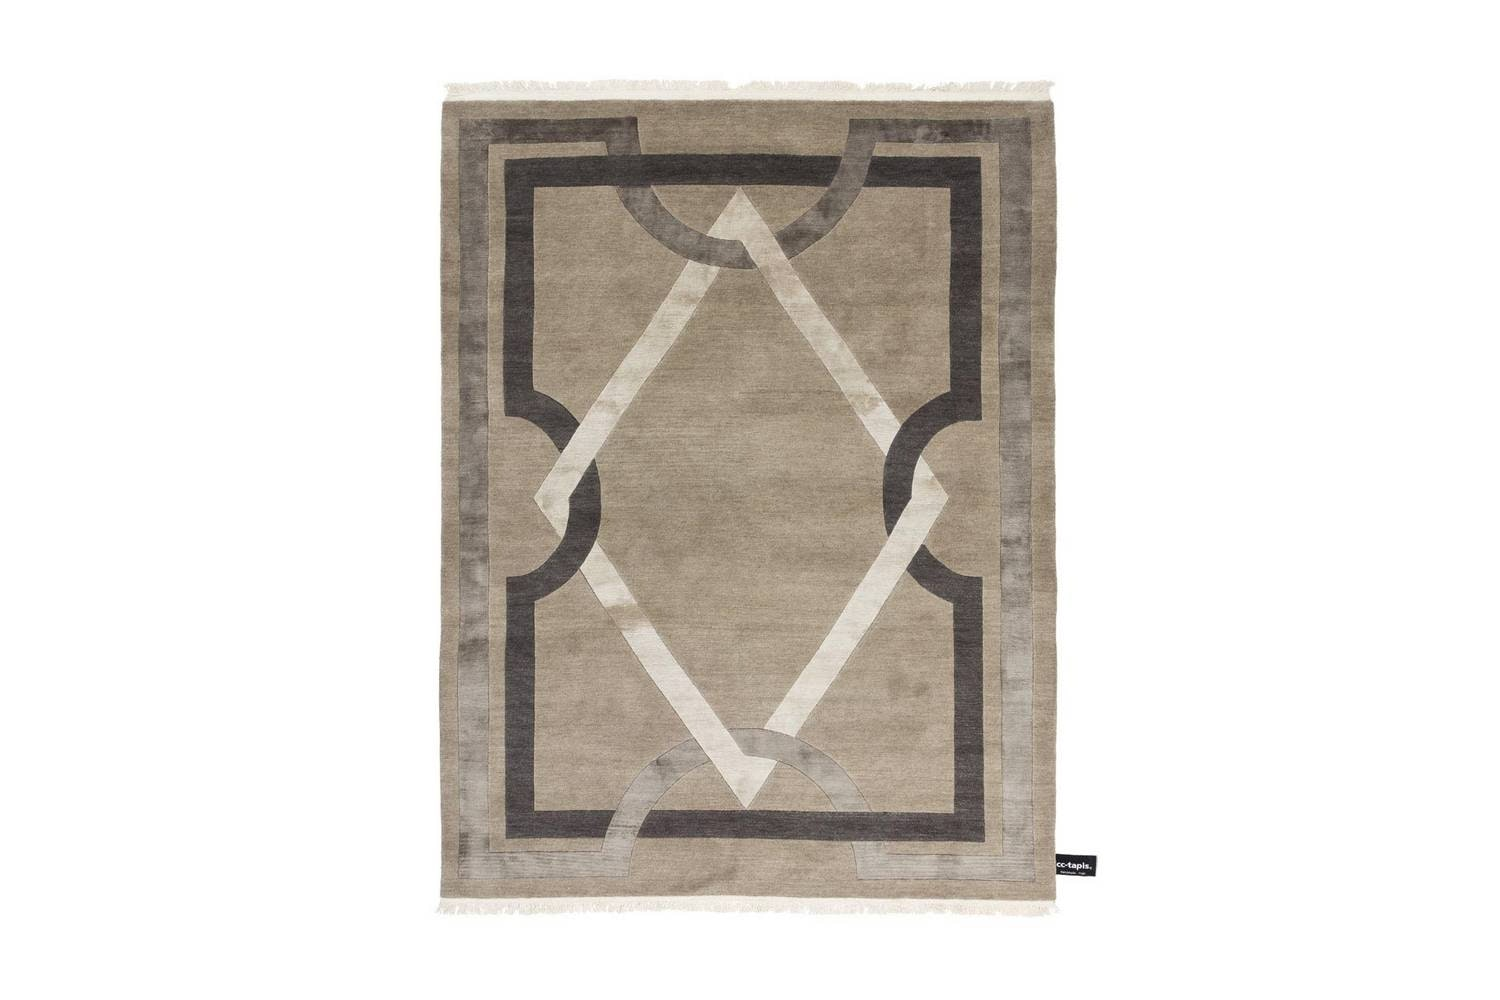 Neoclassique Rug by New Classic Collection for CC-Tapis